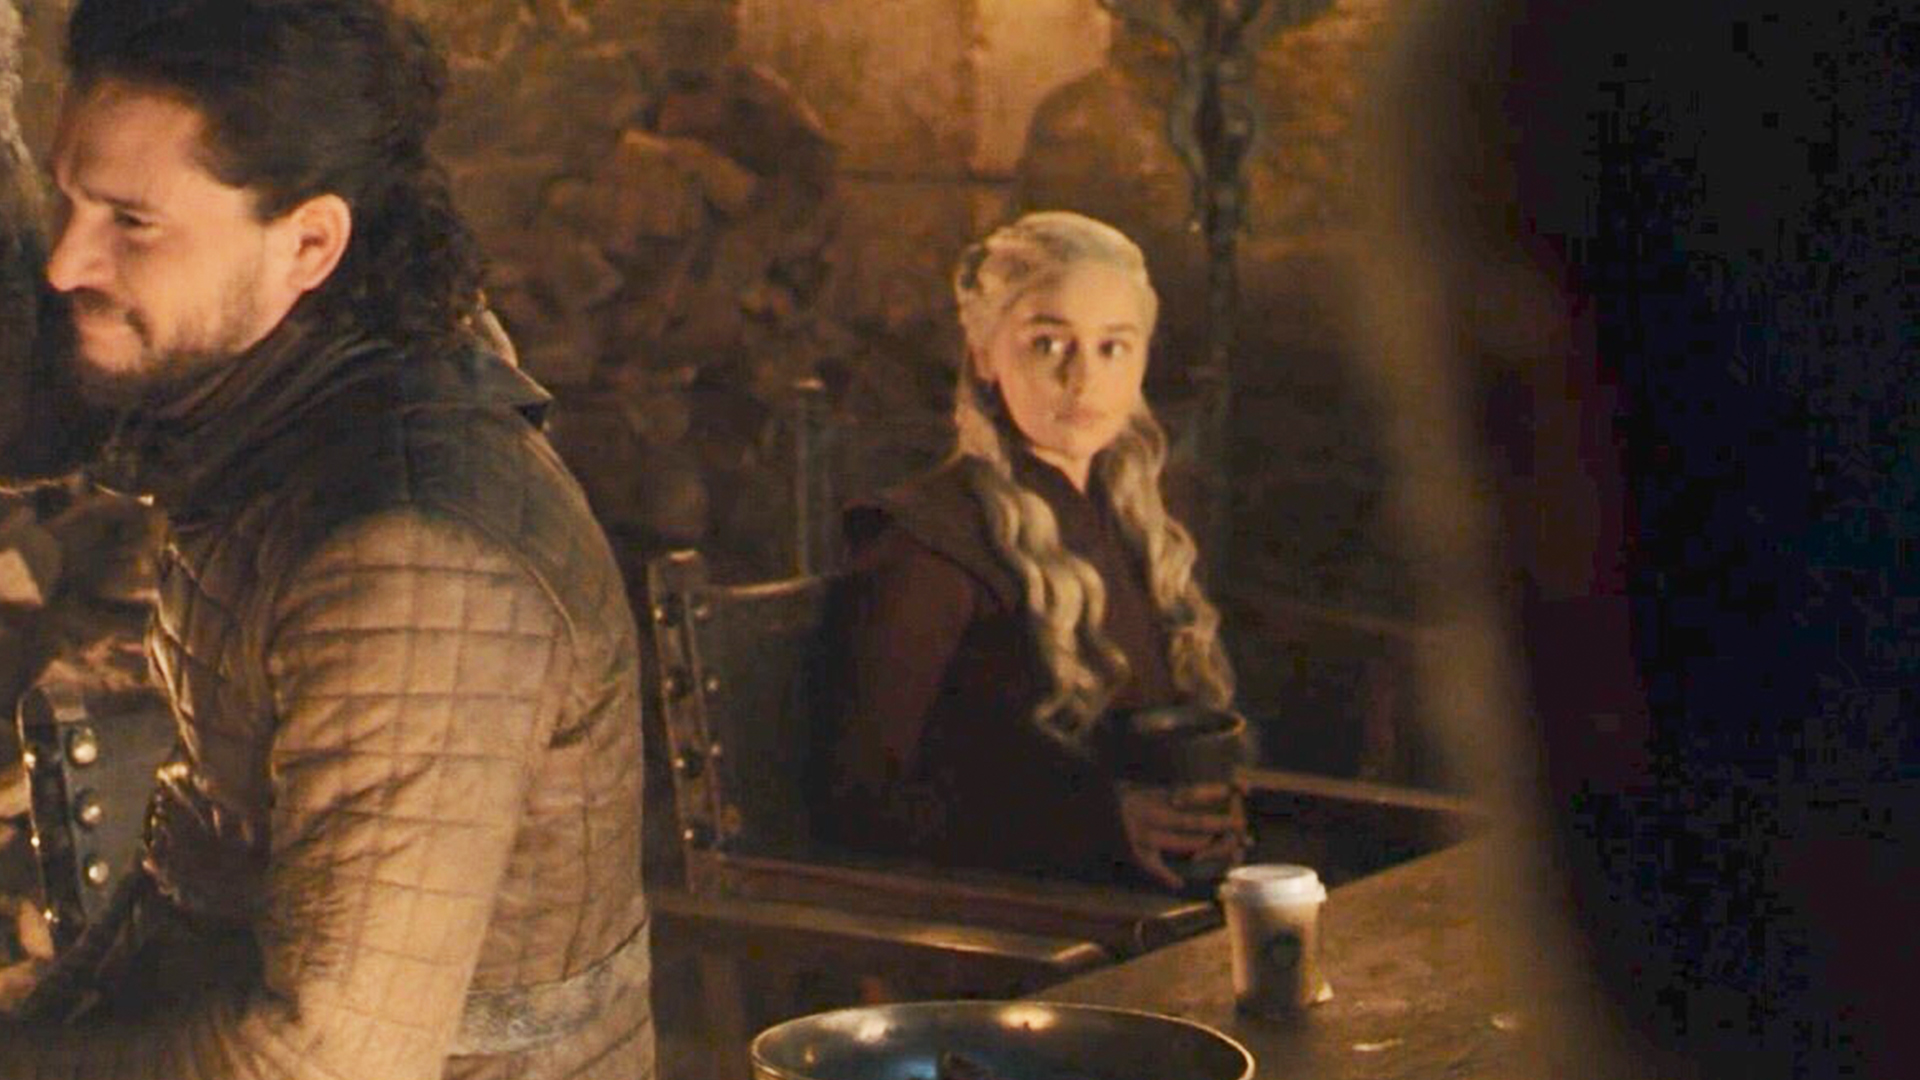 Starbucks cup spotted in 'Game of Thrones' episode